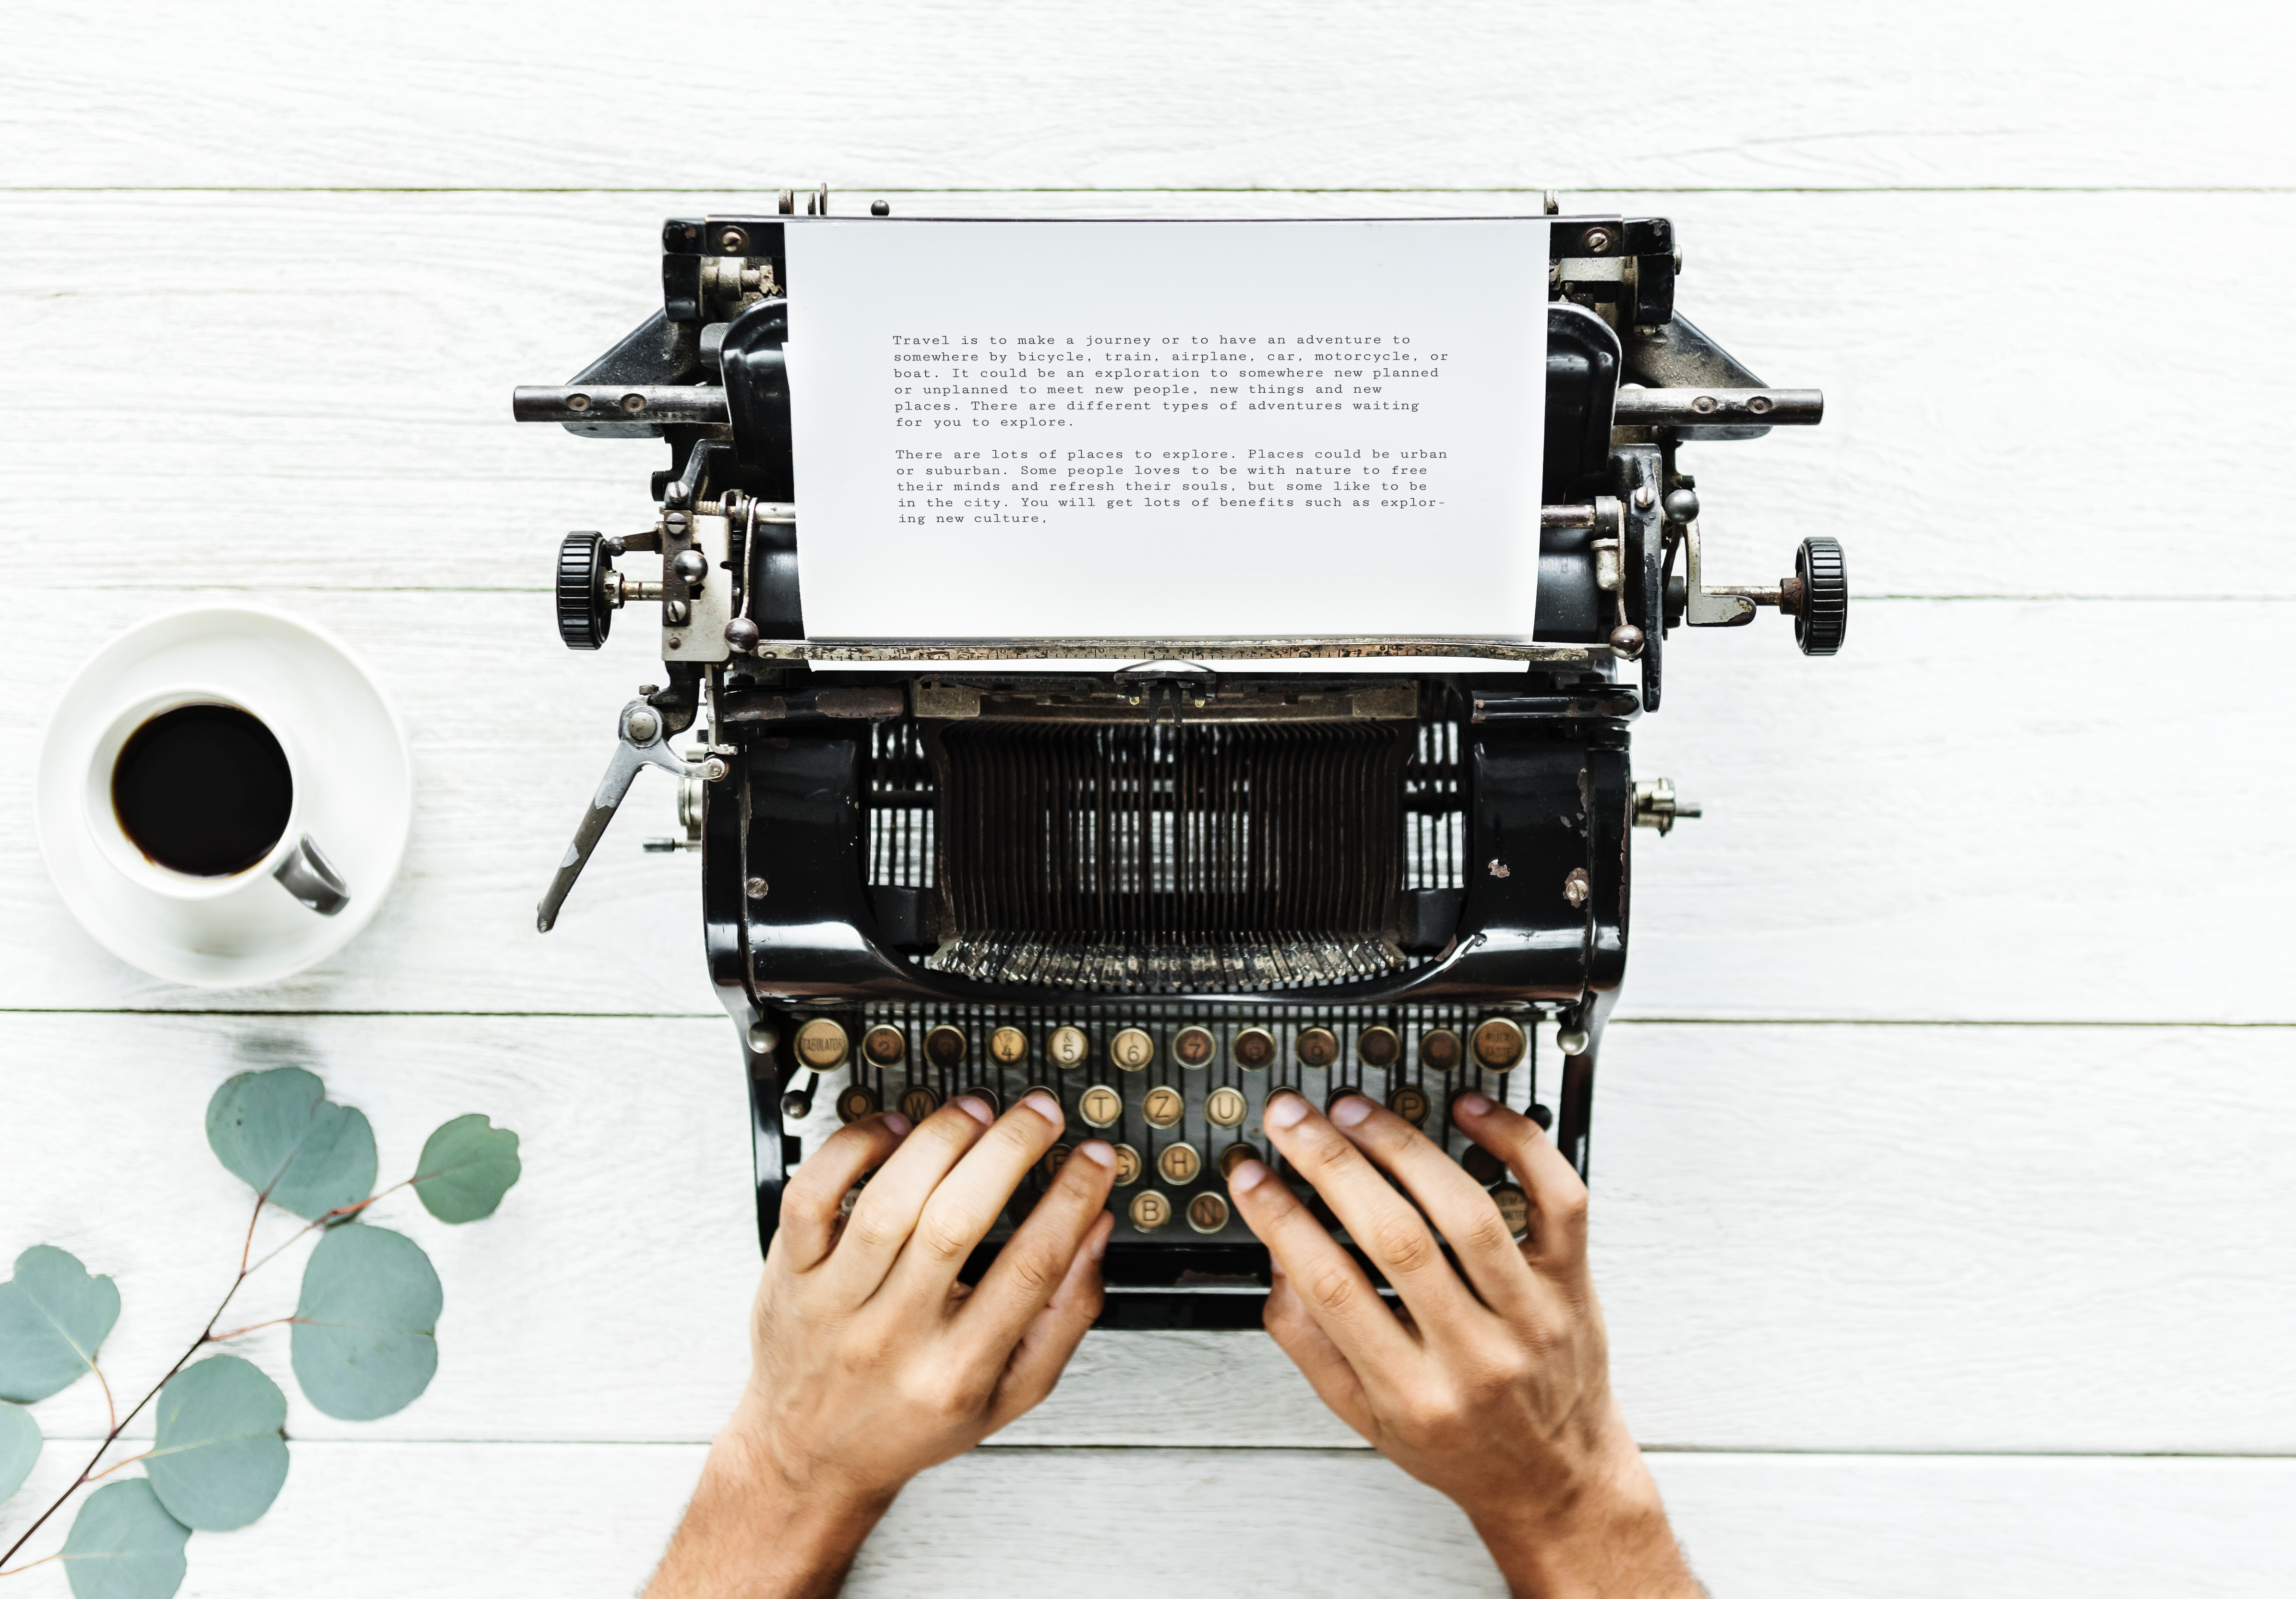 Person Using Typewriter on White Surfac, Background, Mug, Workplace, Working, HQ Photo